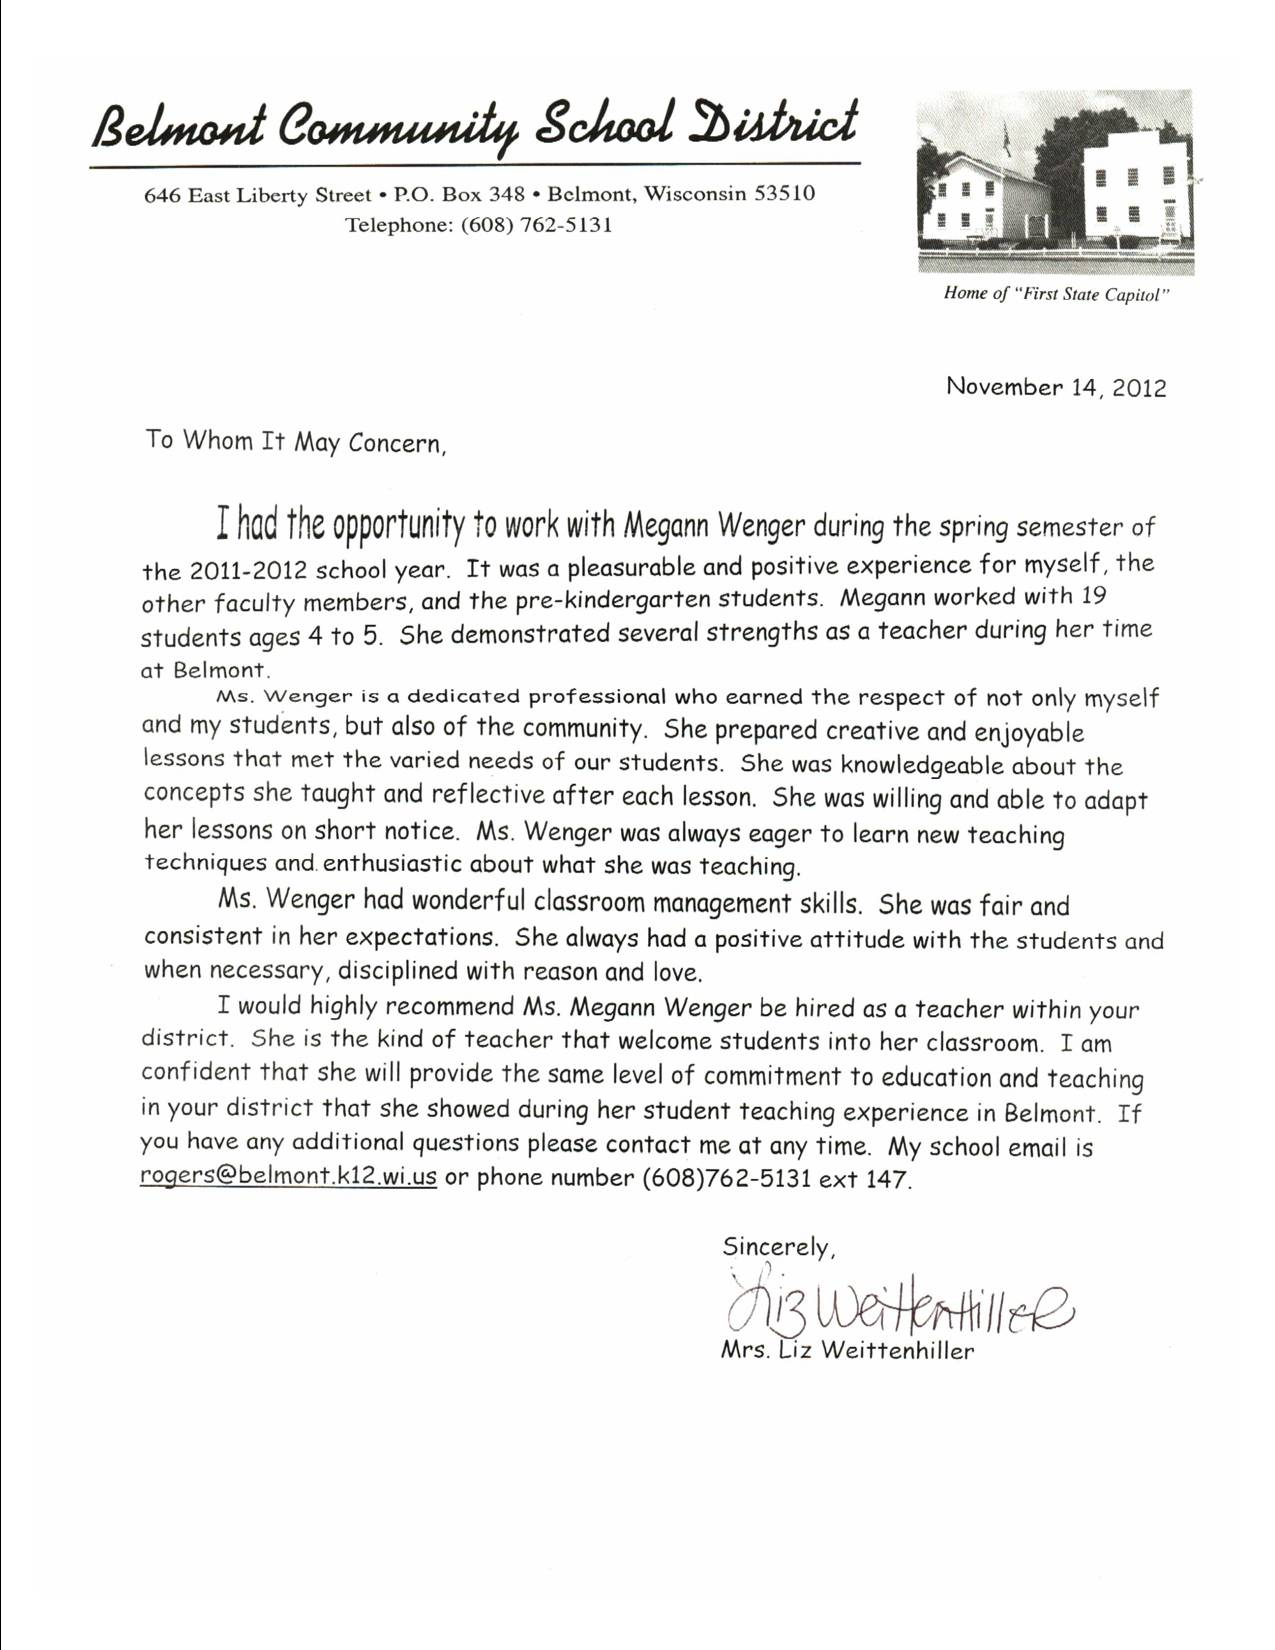 Letters Of Recommendation Elizabeth Weittenhiller: 4K Teacher  Belmont  Elementary School  Resume For Recommendation Letter